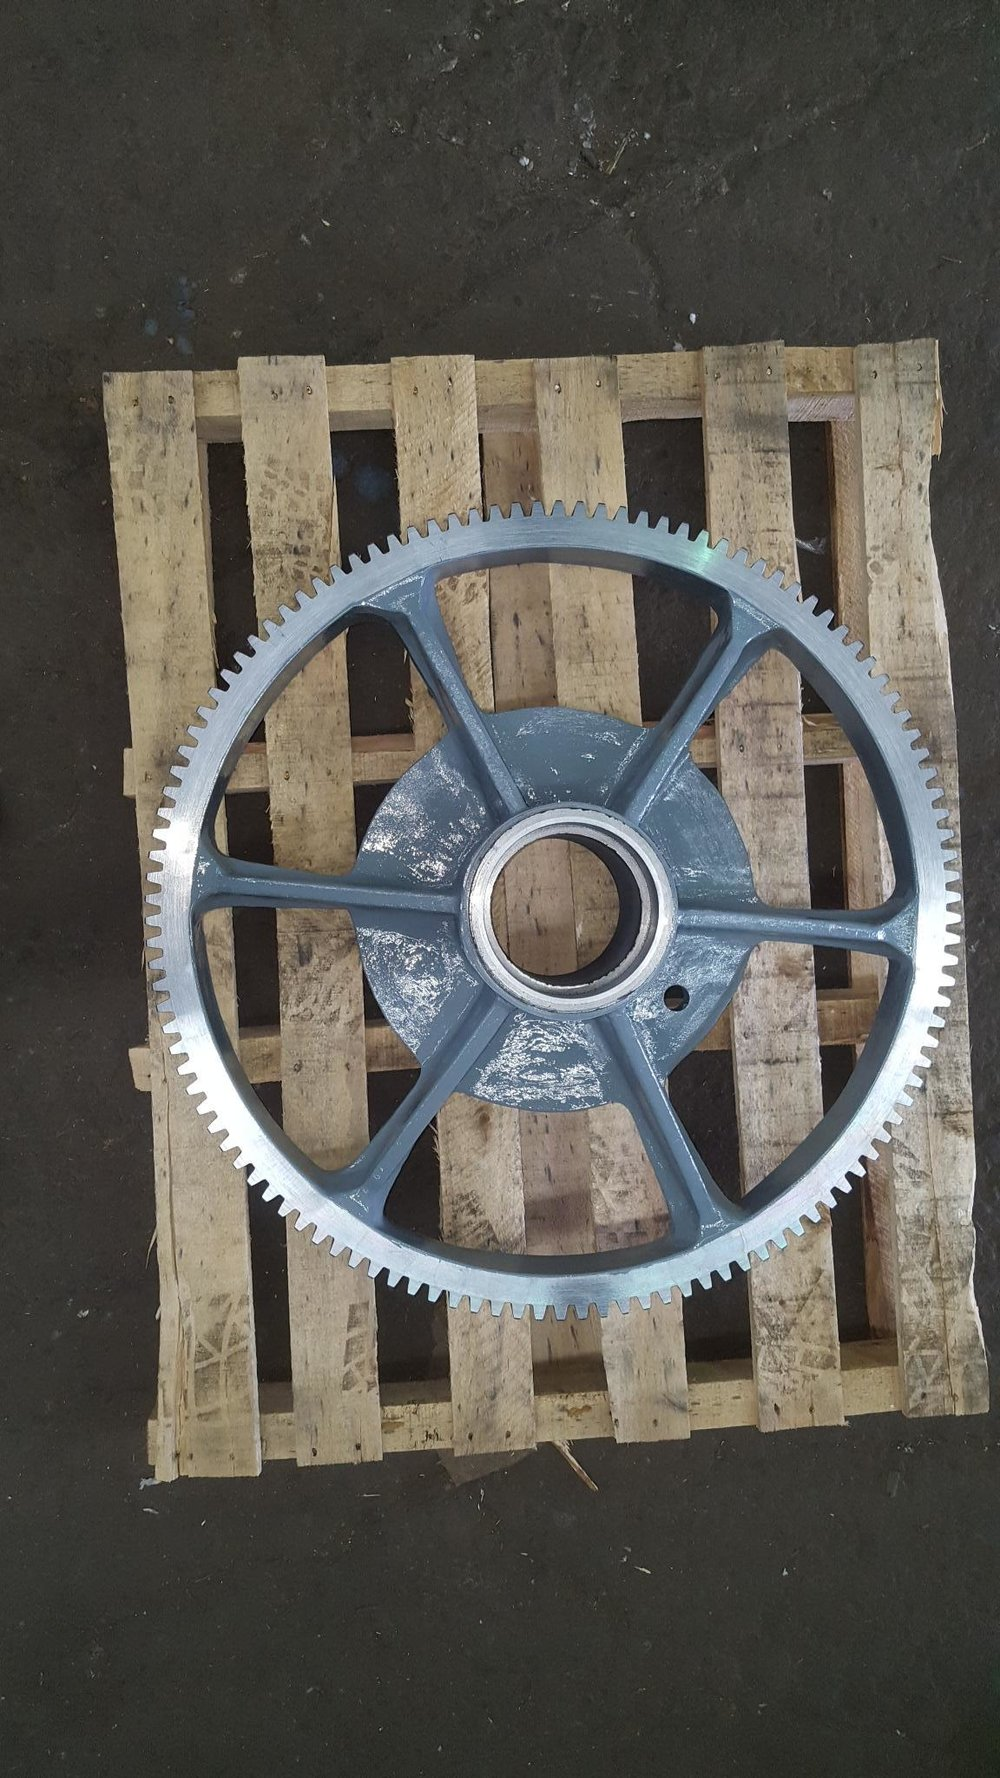 CAST IRON GEAR